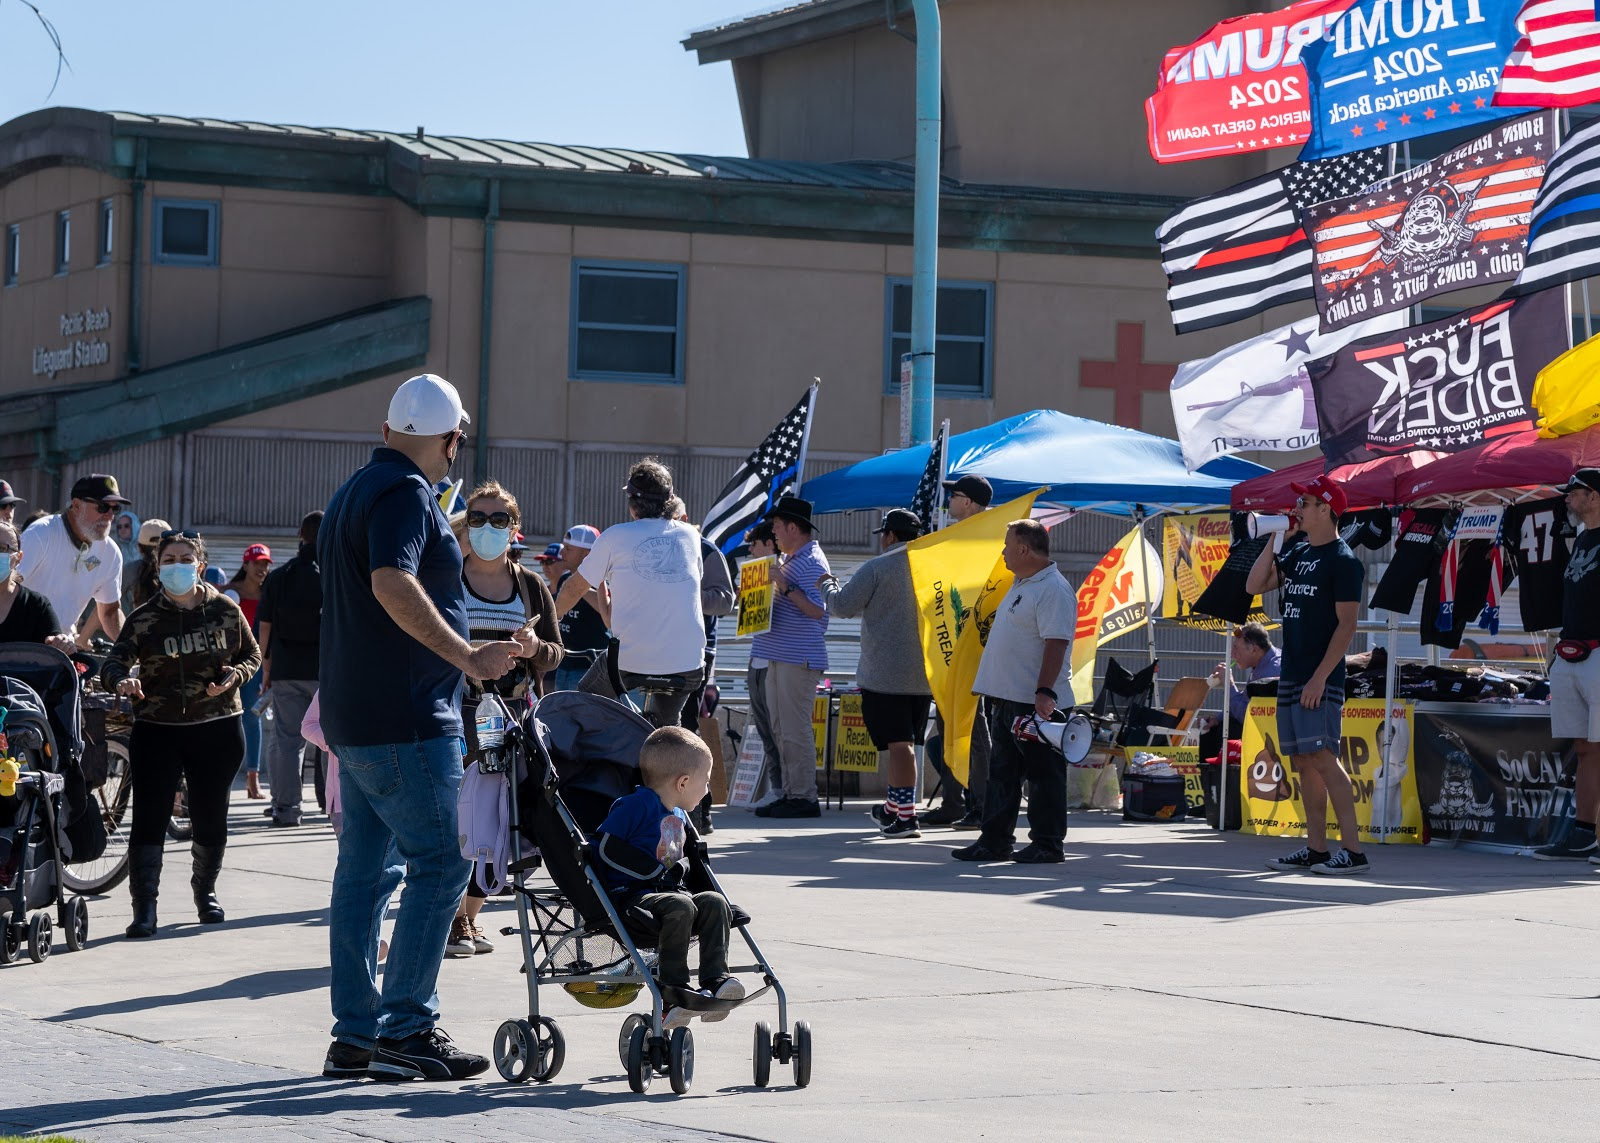 A toddler looks on at the display, while two men with bullhorns take turns comparing the governor to various dictators throughout history. Among the flags for sale is a blue Trump 2024 flag, with the text 'Take America Back' just below the intended year. At the time of writing, Trump has not announced his candidacy.